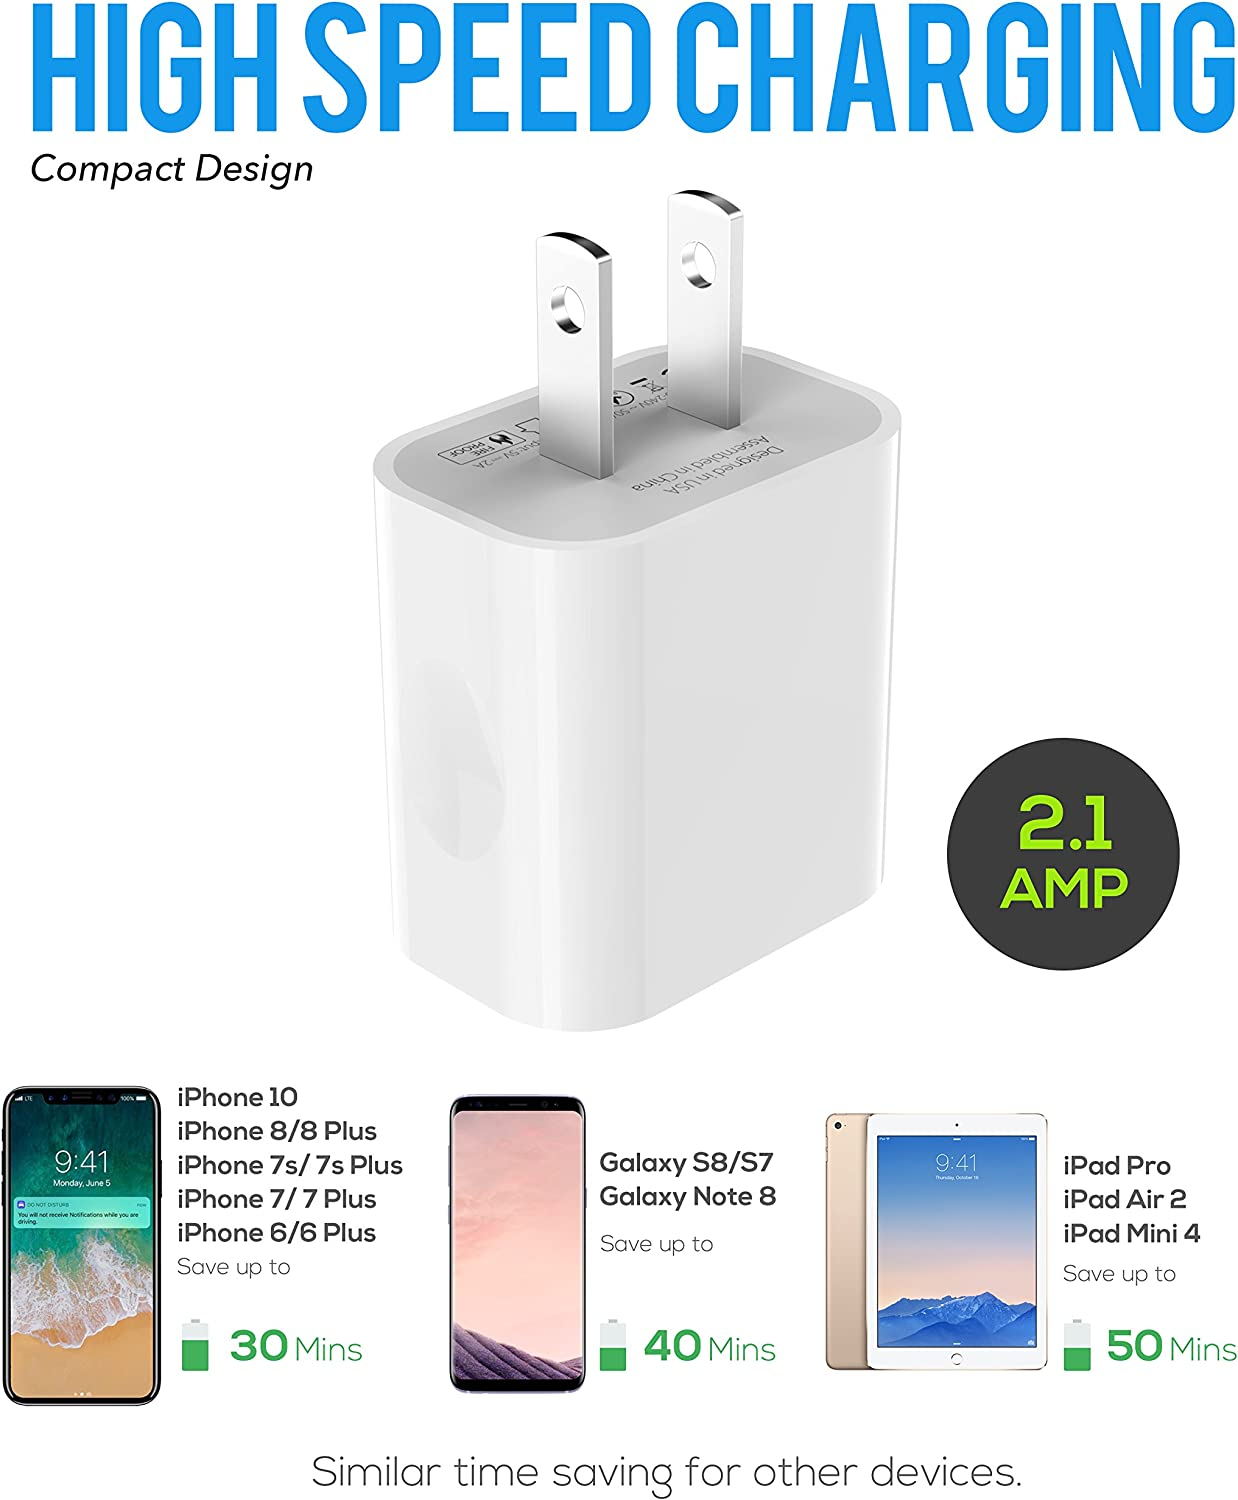 iPhone 8 Charger Set iPhone X 7 Plus 7 6 8 Plus 8 6S plus 5W 2.1A Power Adapter and Apple MFi Certified Lightning to USB Cable Kit by Ixir 6S 1 Wall Charger + 1 Cable